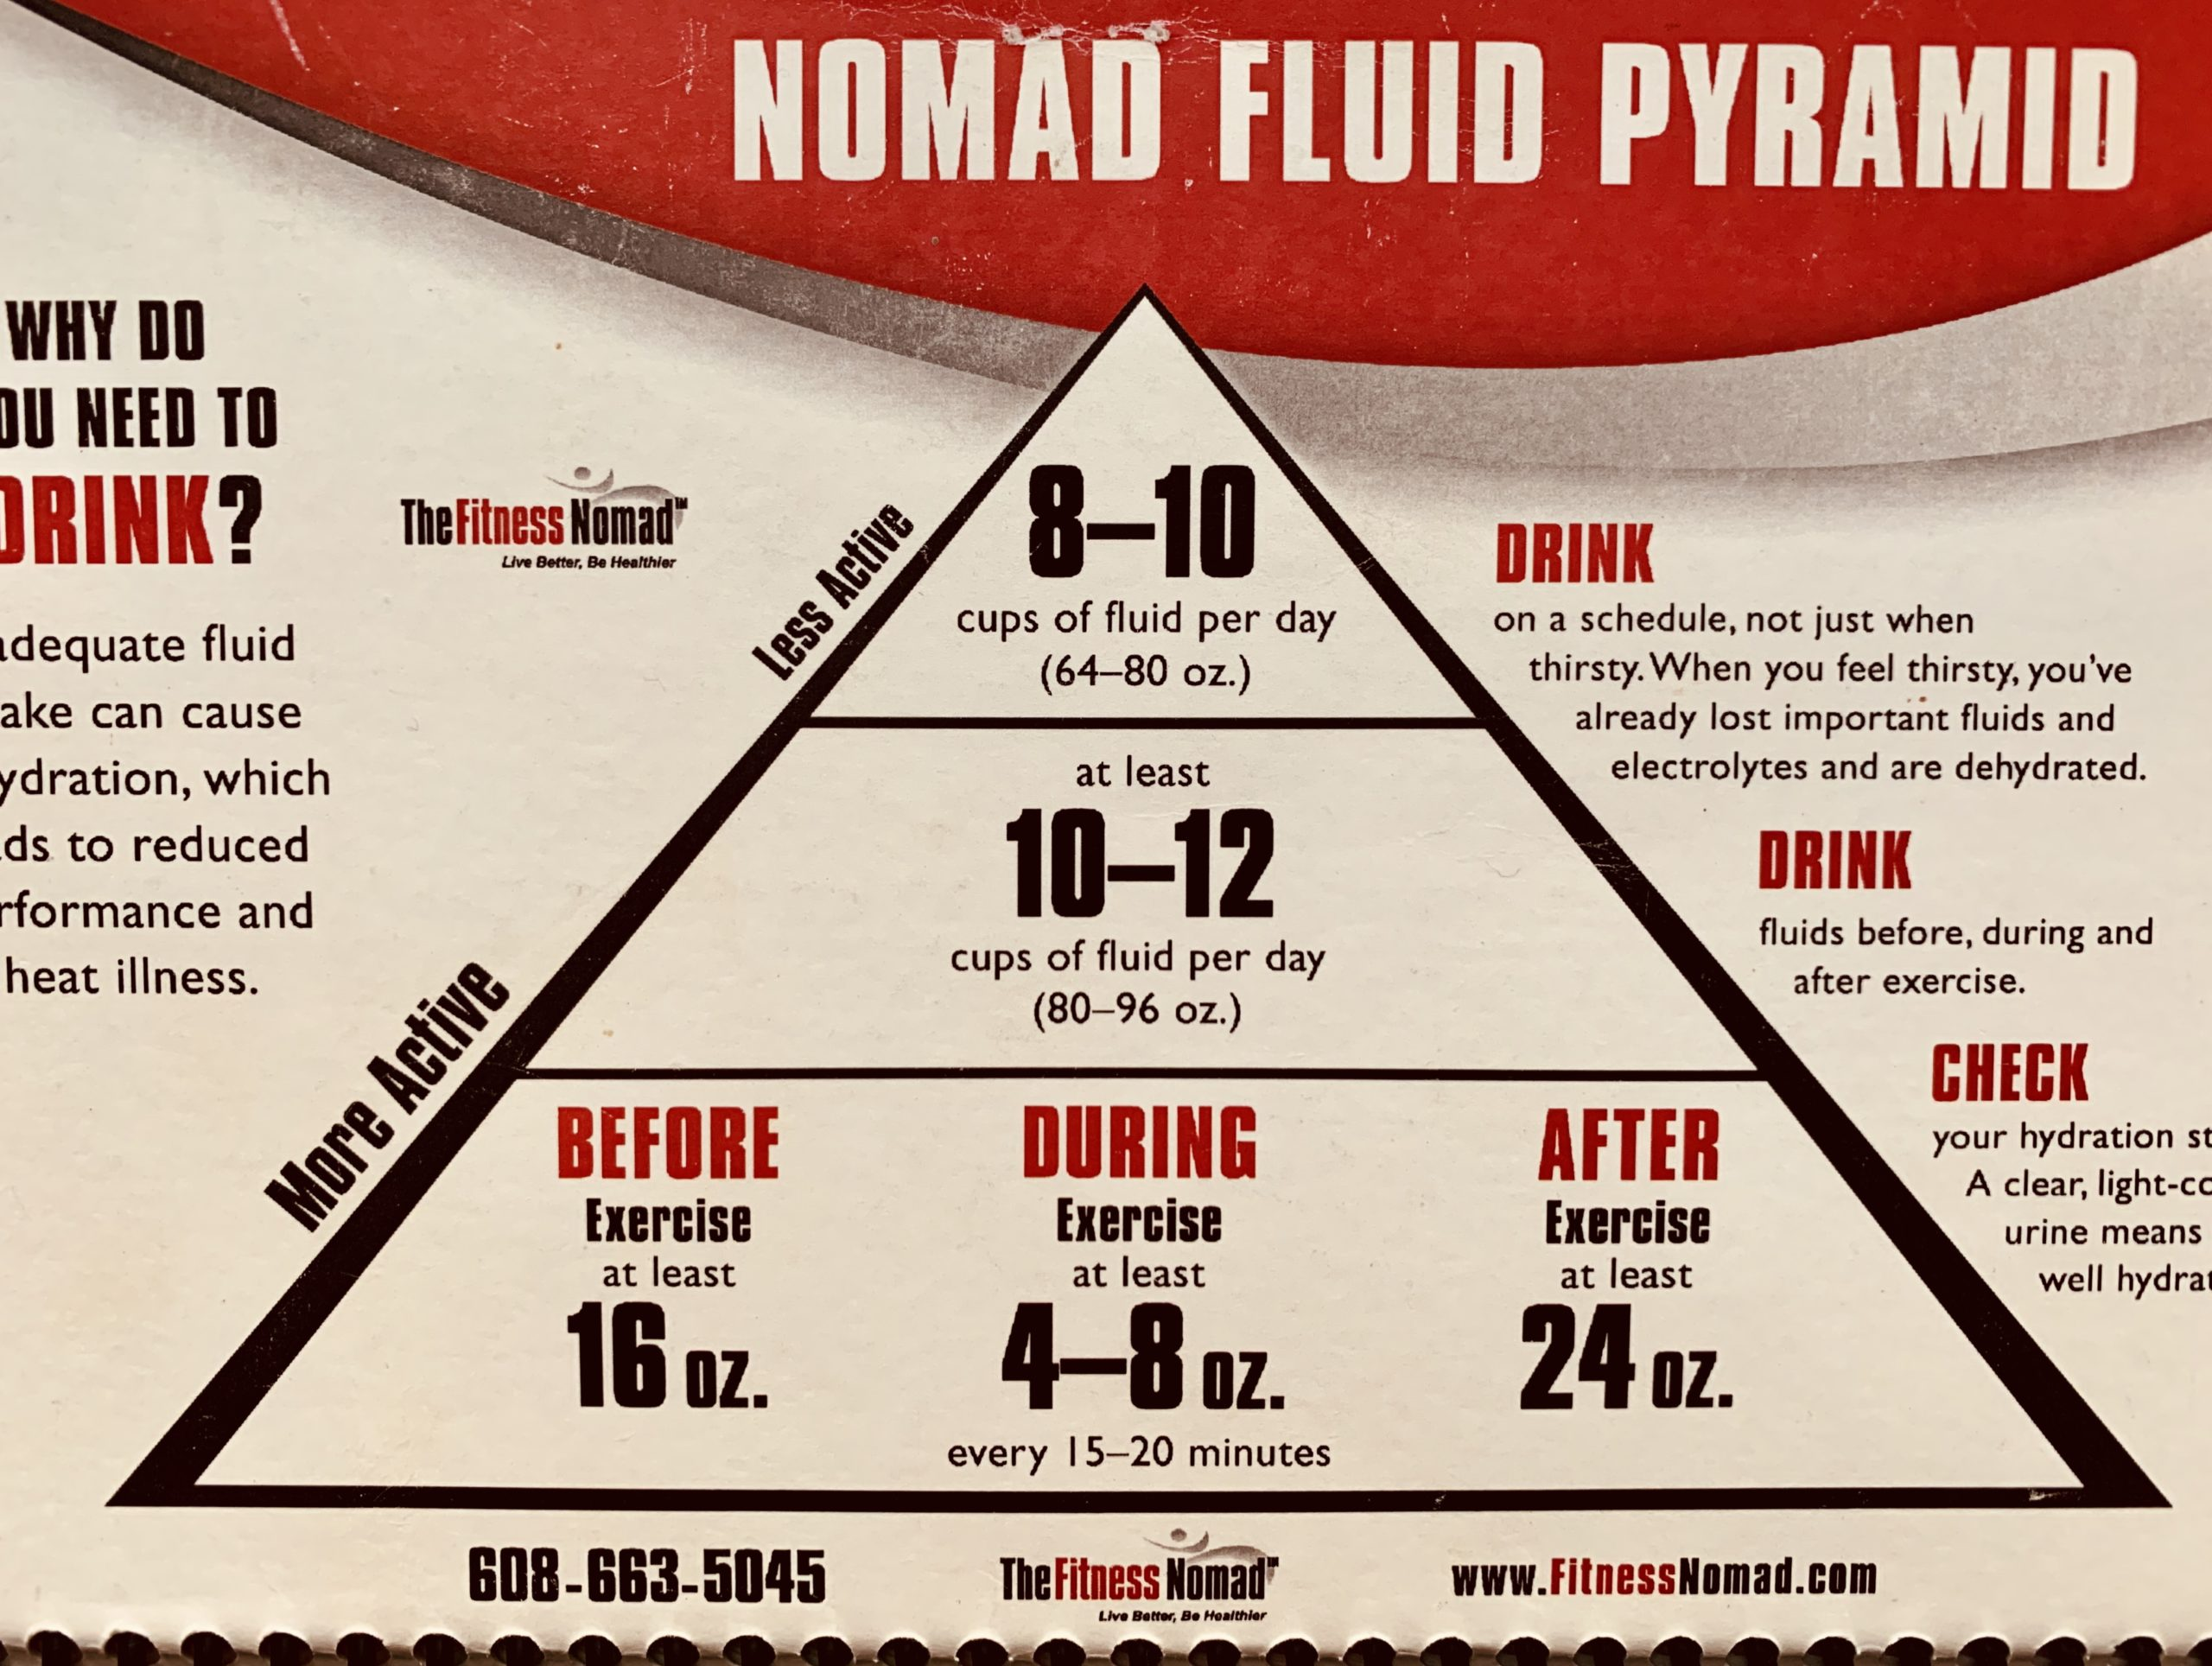 the fitness nomad fluid pyramid by john c ashworth